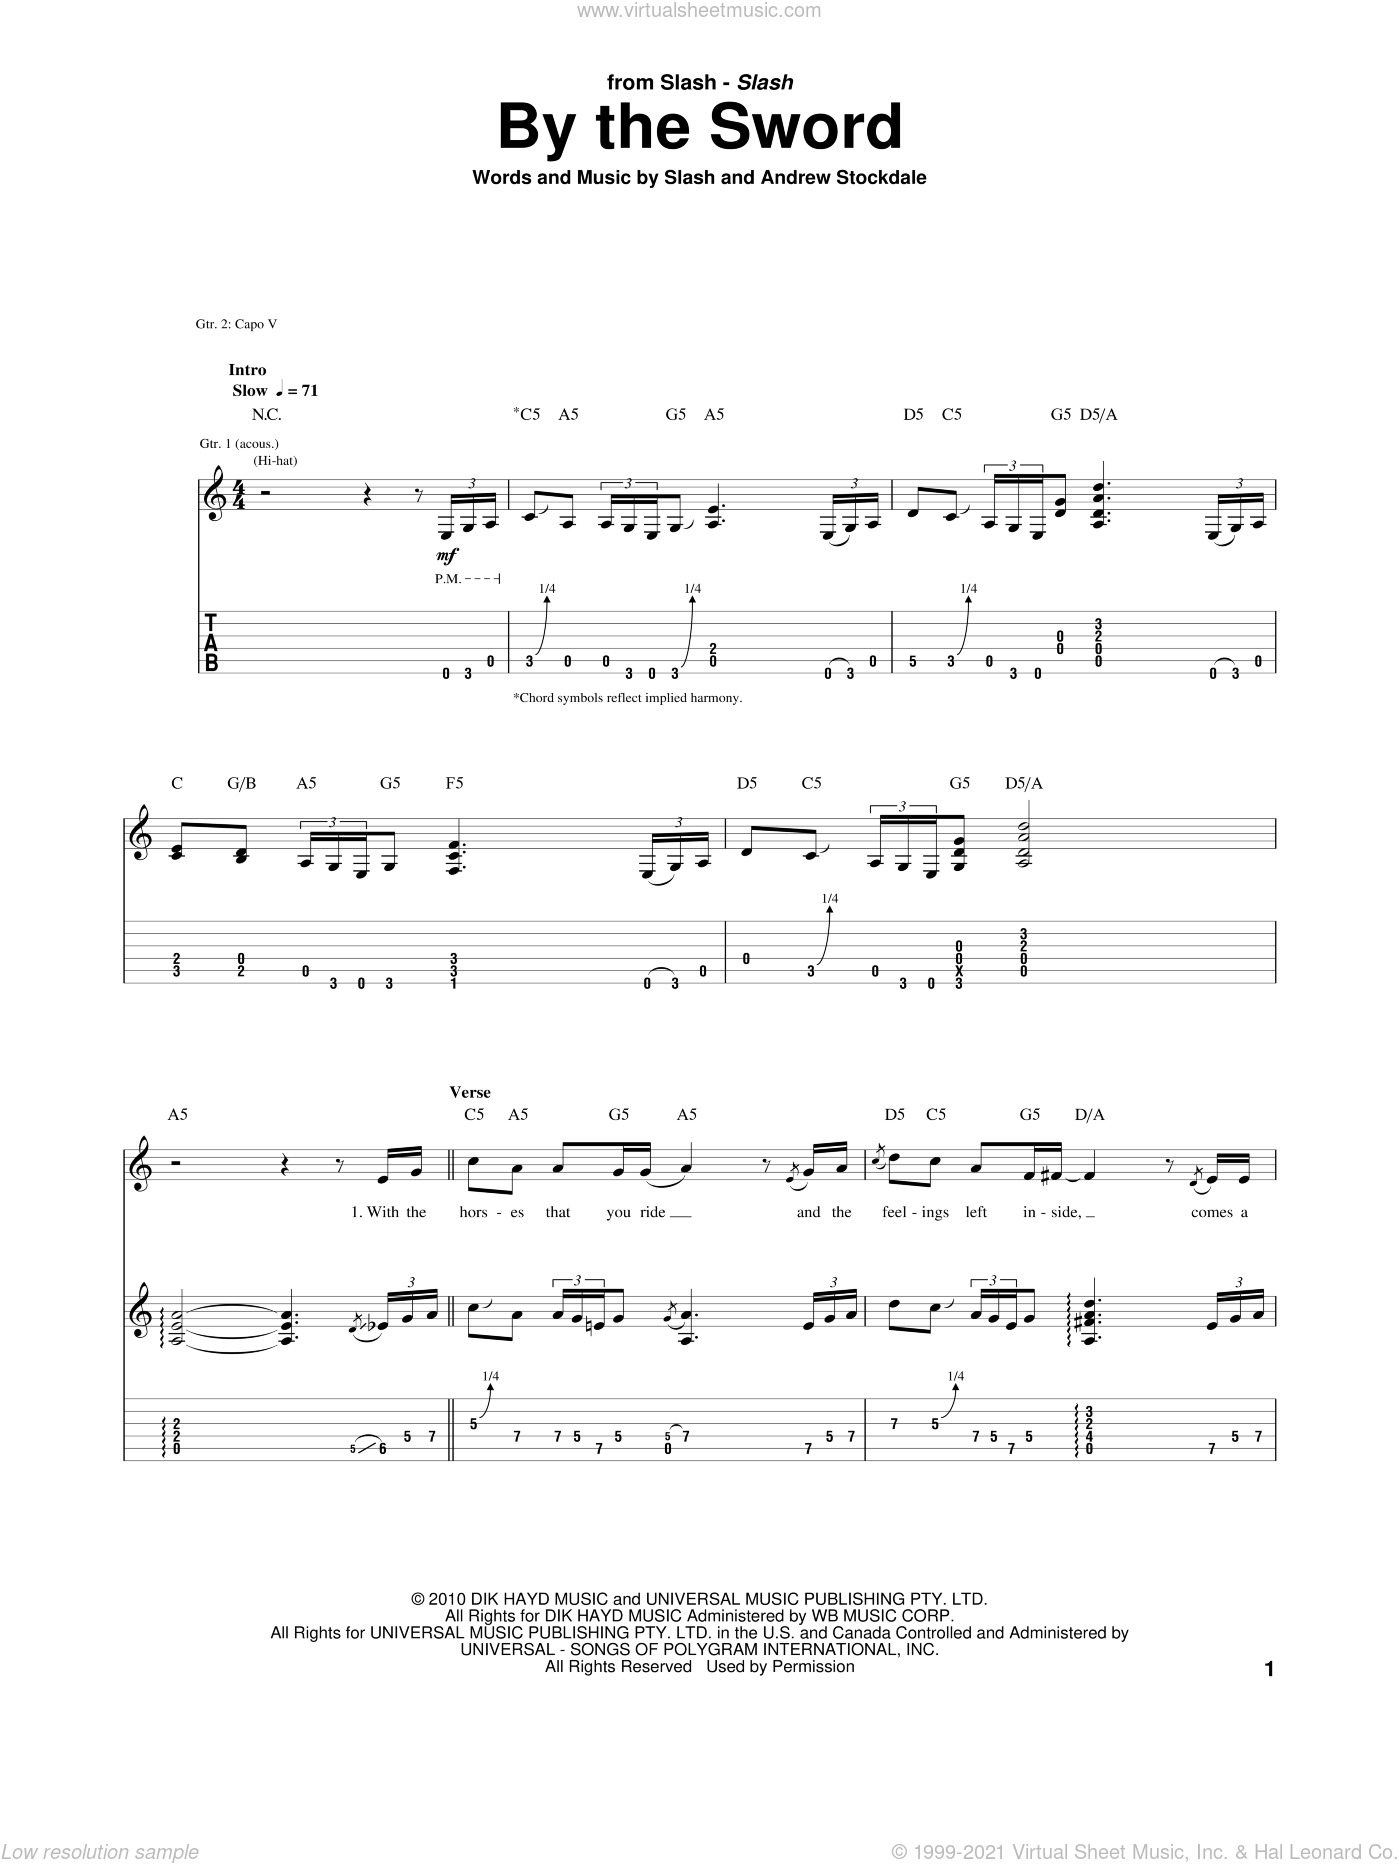 By The Sword sheet music for guitar (tablature) by Slash and Andrew Stockdale, intermediate skill level